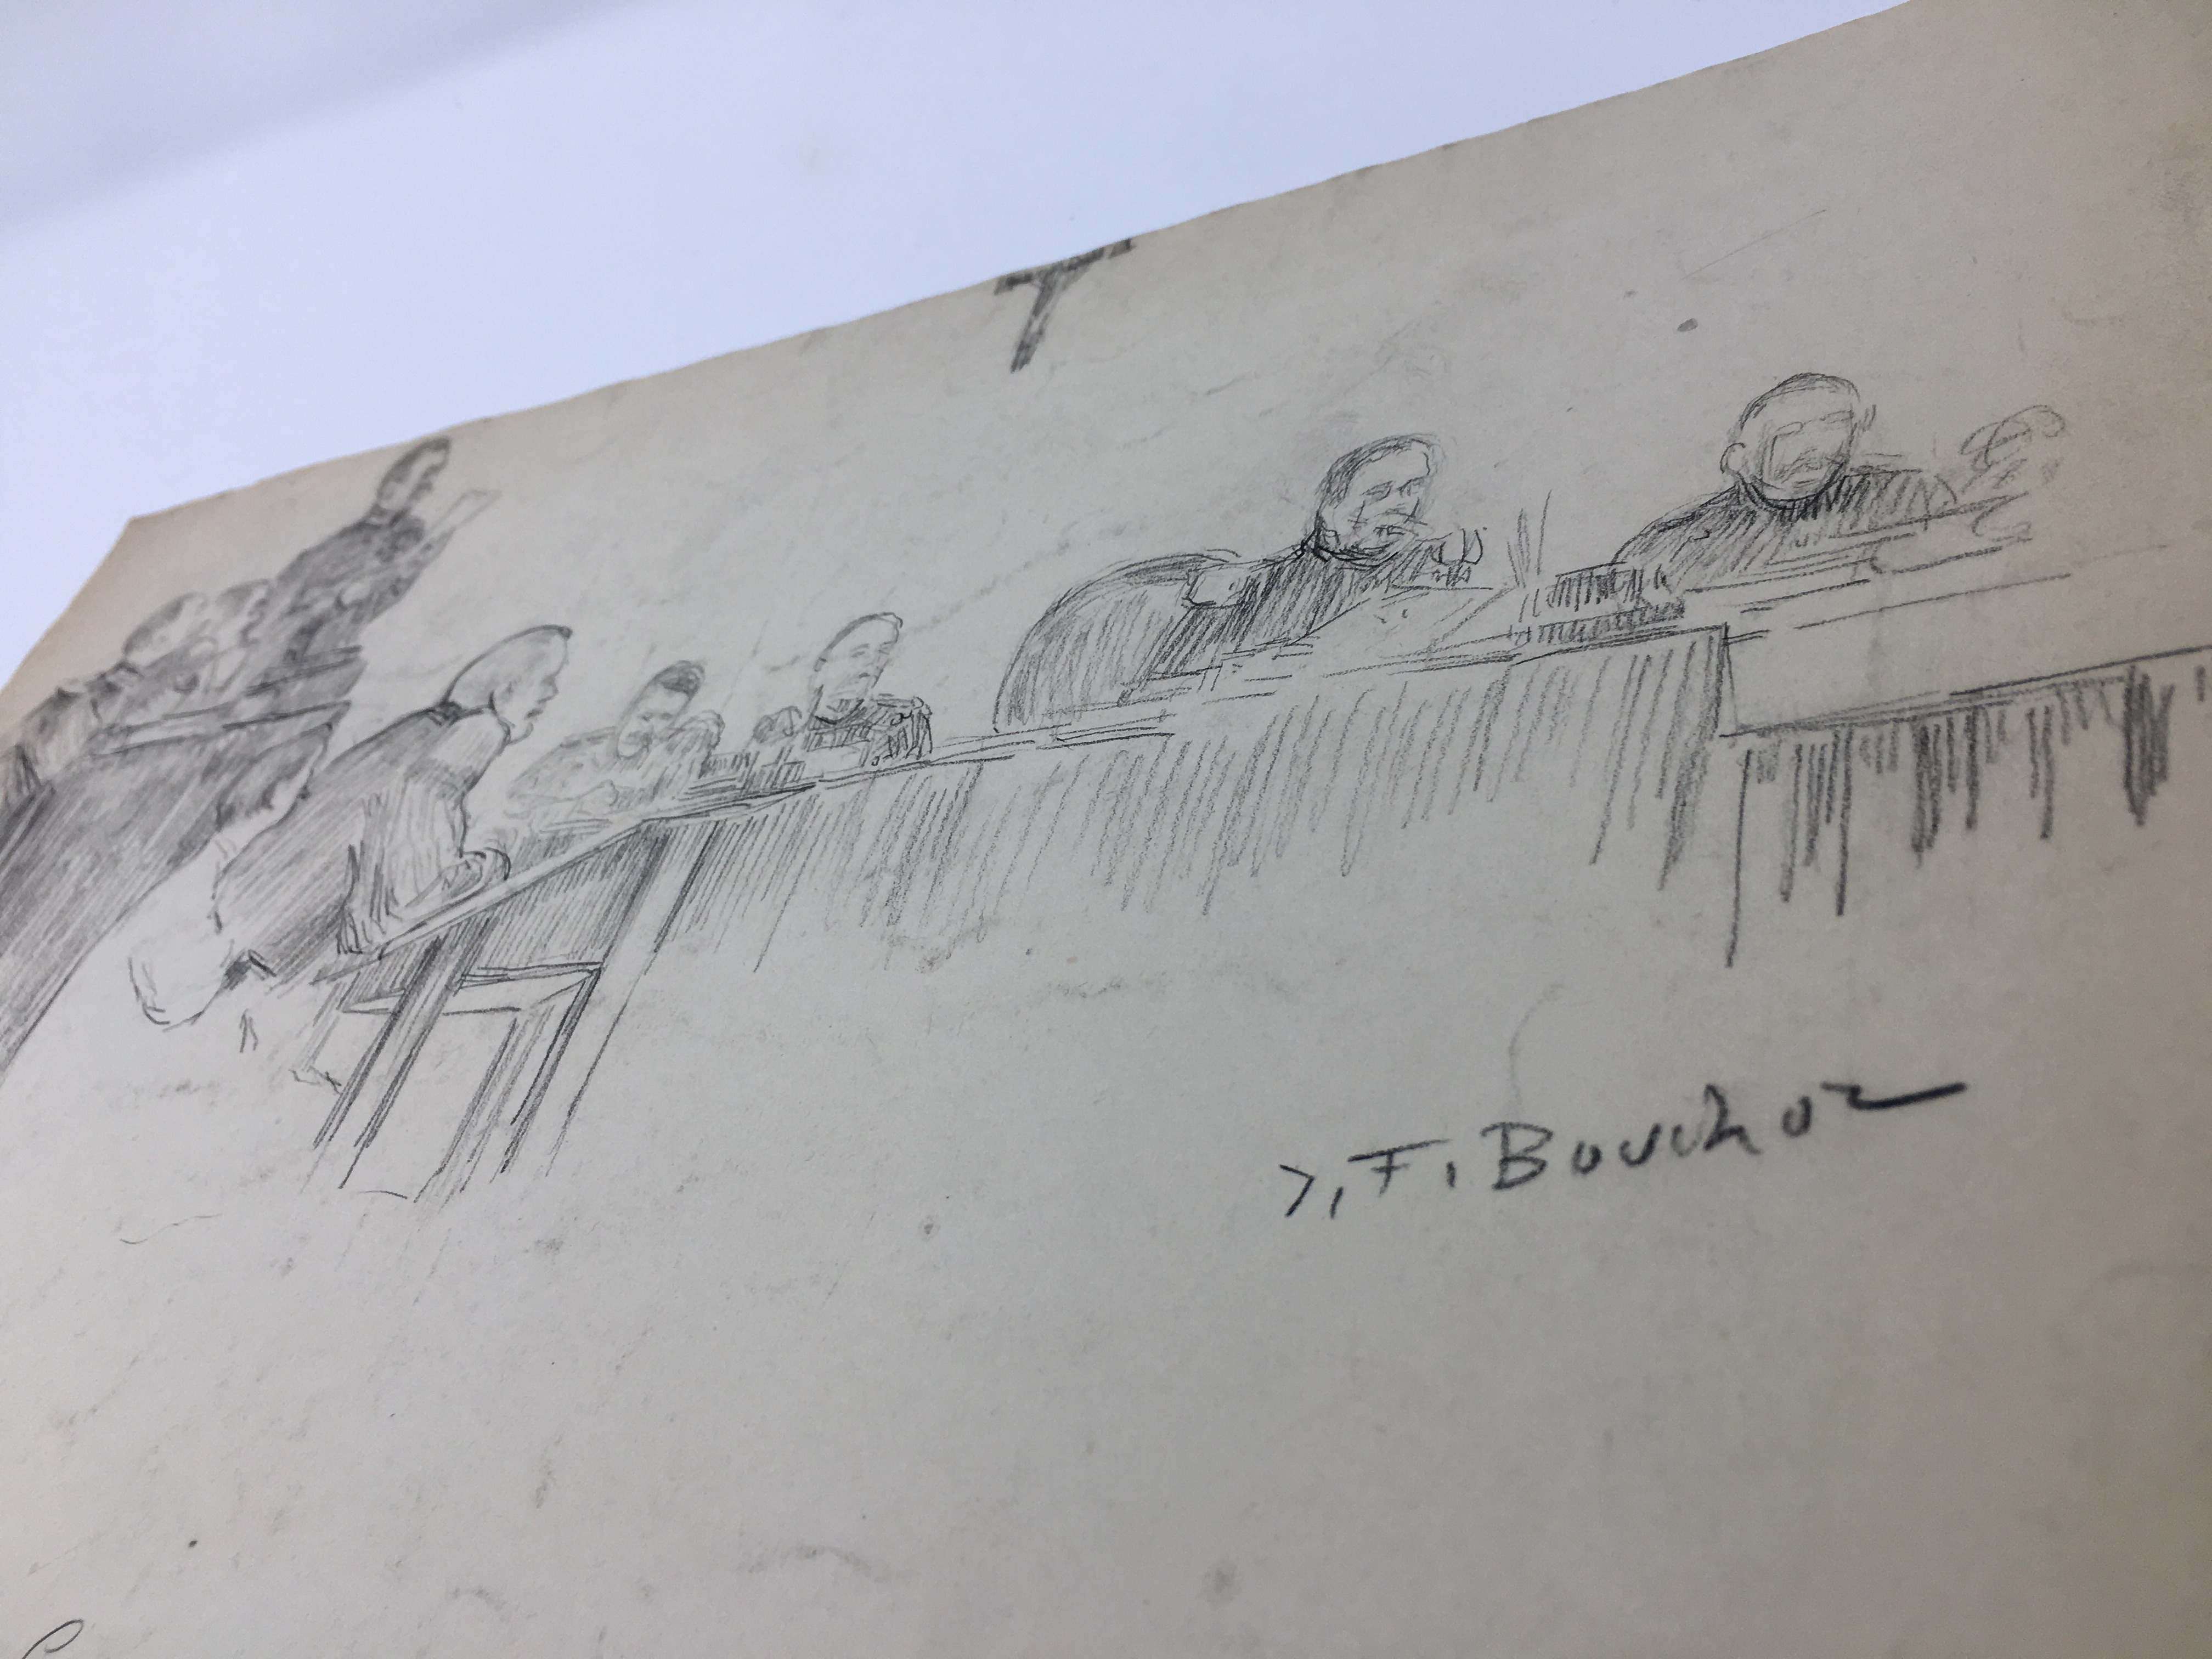 J'Accuse Newspaper, Emile Zola Quote, Signed Dreyfus Portrait, Rare Trial Drawings & Schwartzkoppen - Image 33 of 74